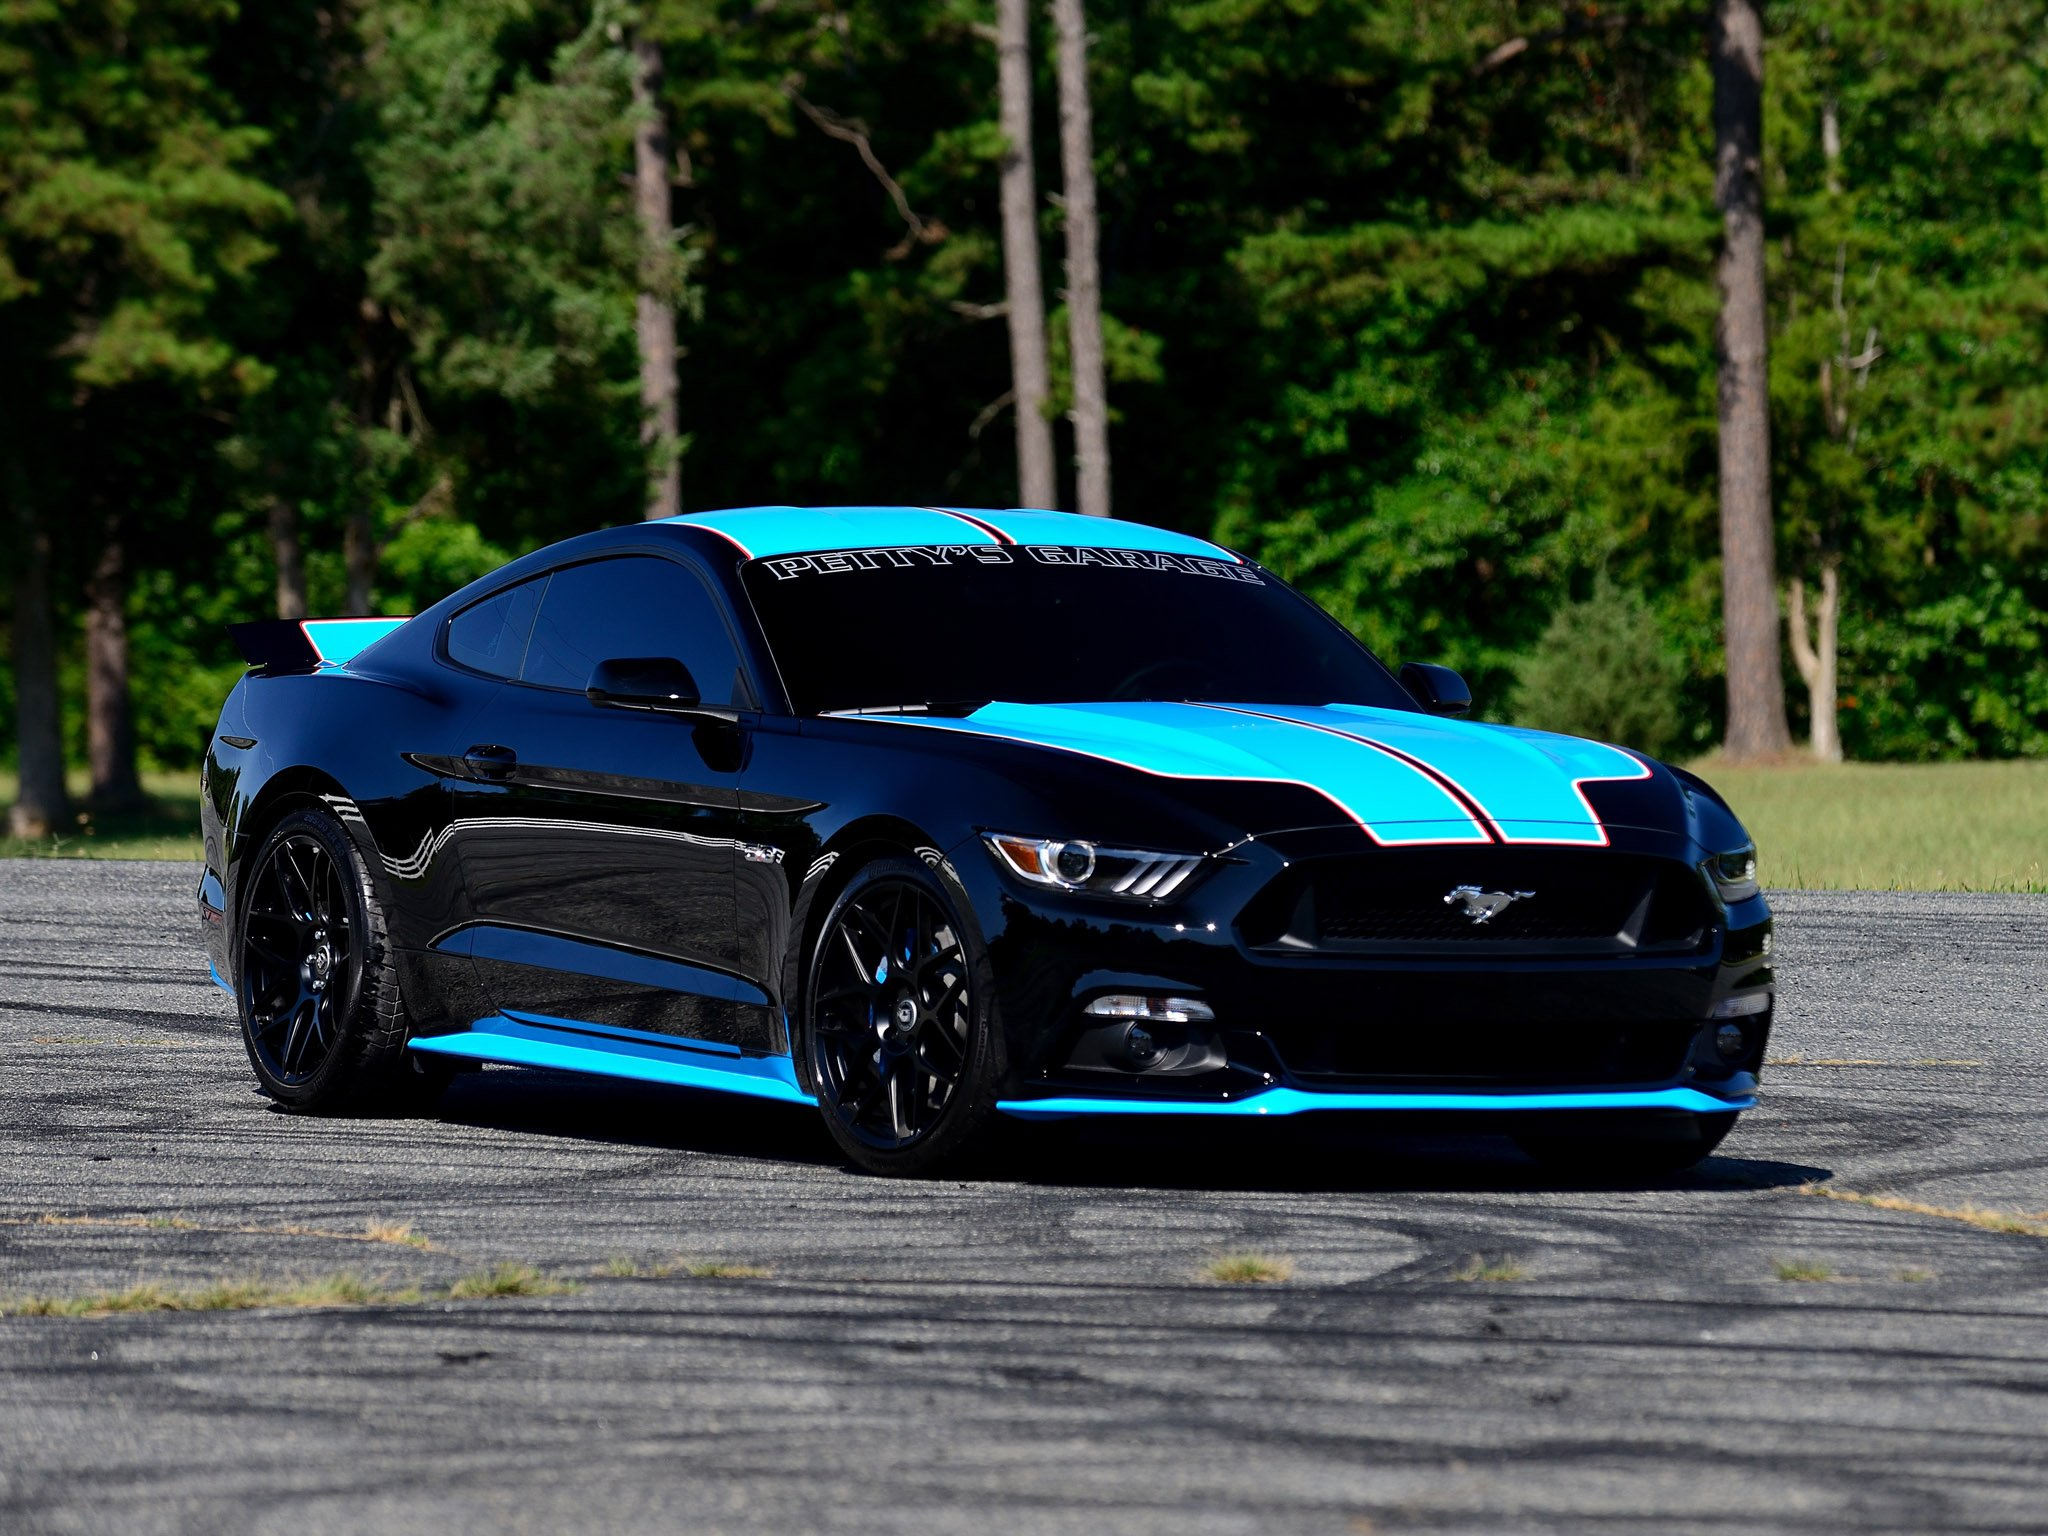 Original Mustang Shelby >> 2015 Ford Mustang G-T Fastback Pettys Garage muscle tuning wallpaper | 2048x1536 | 851641 ...